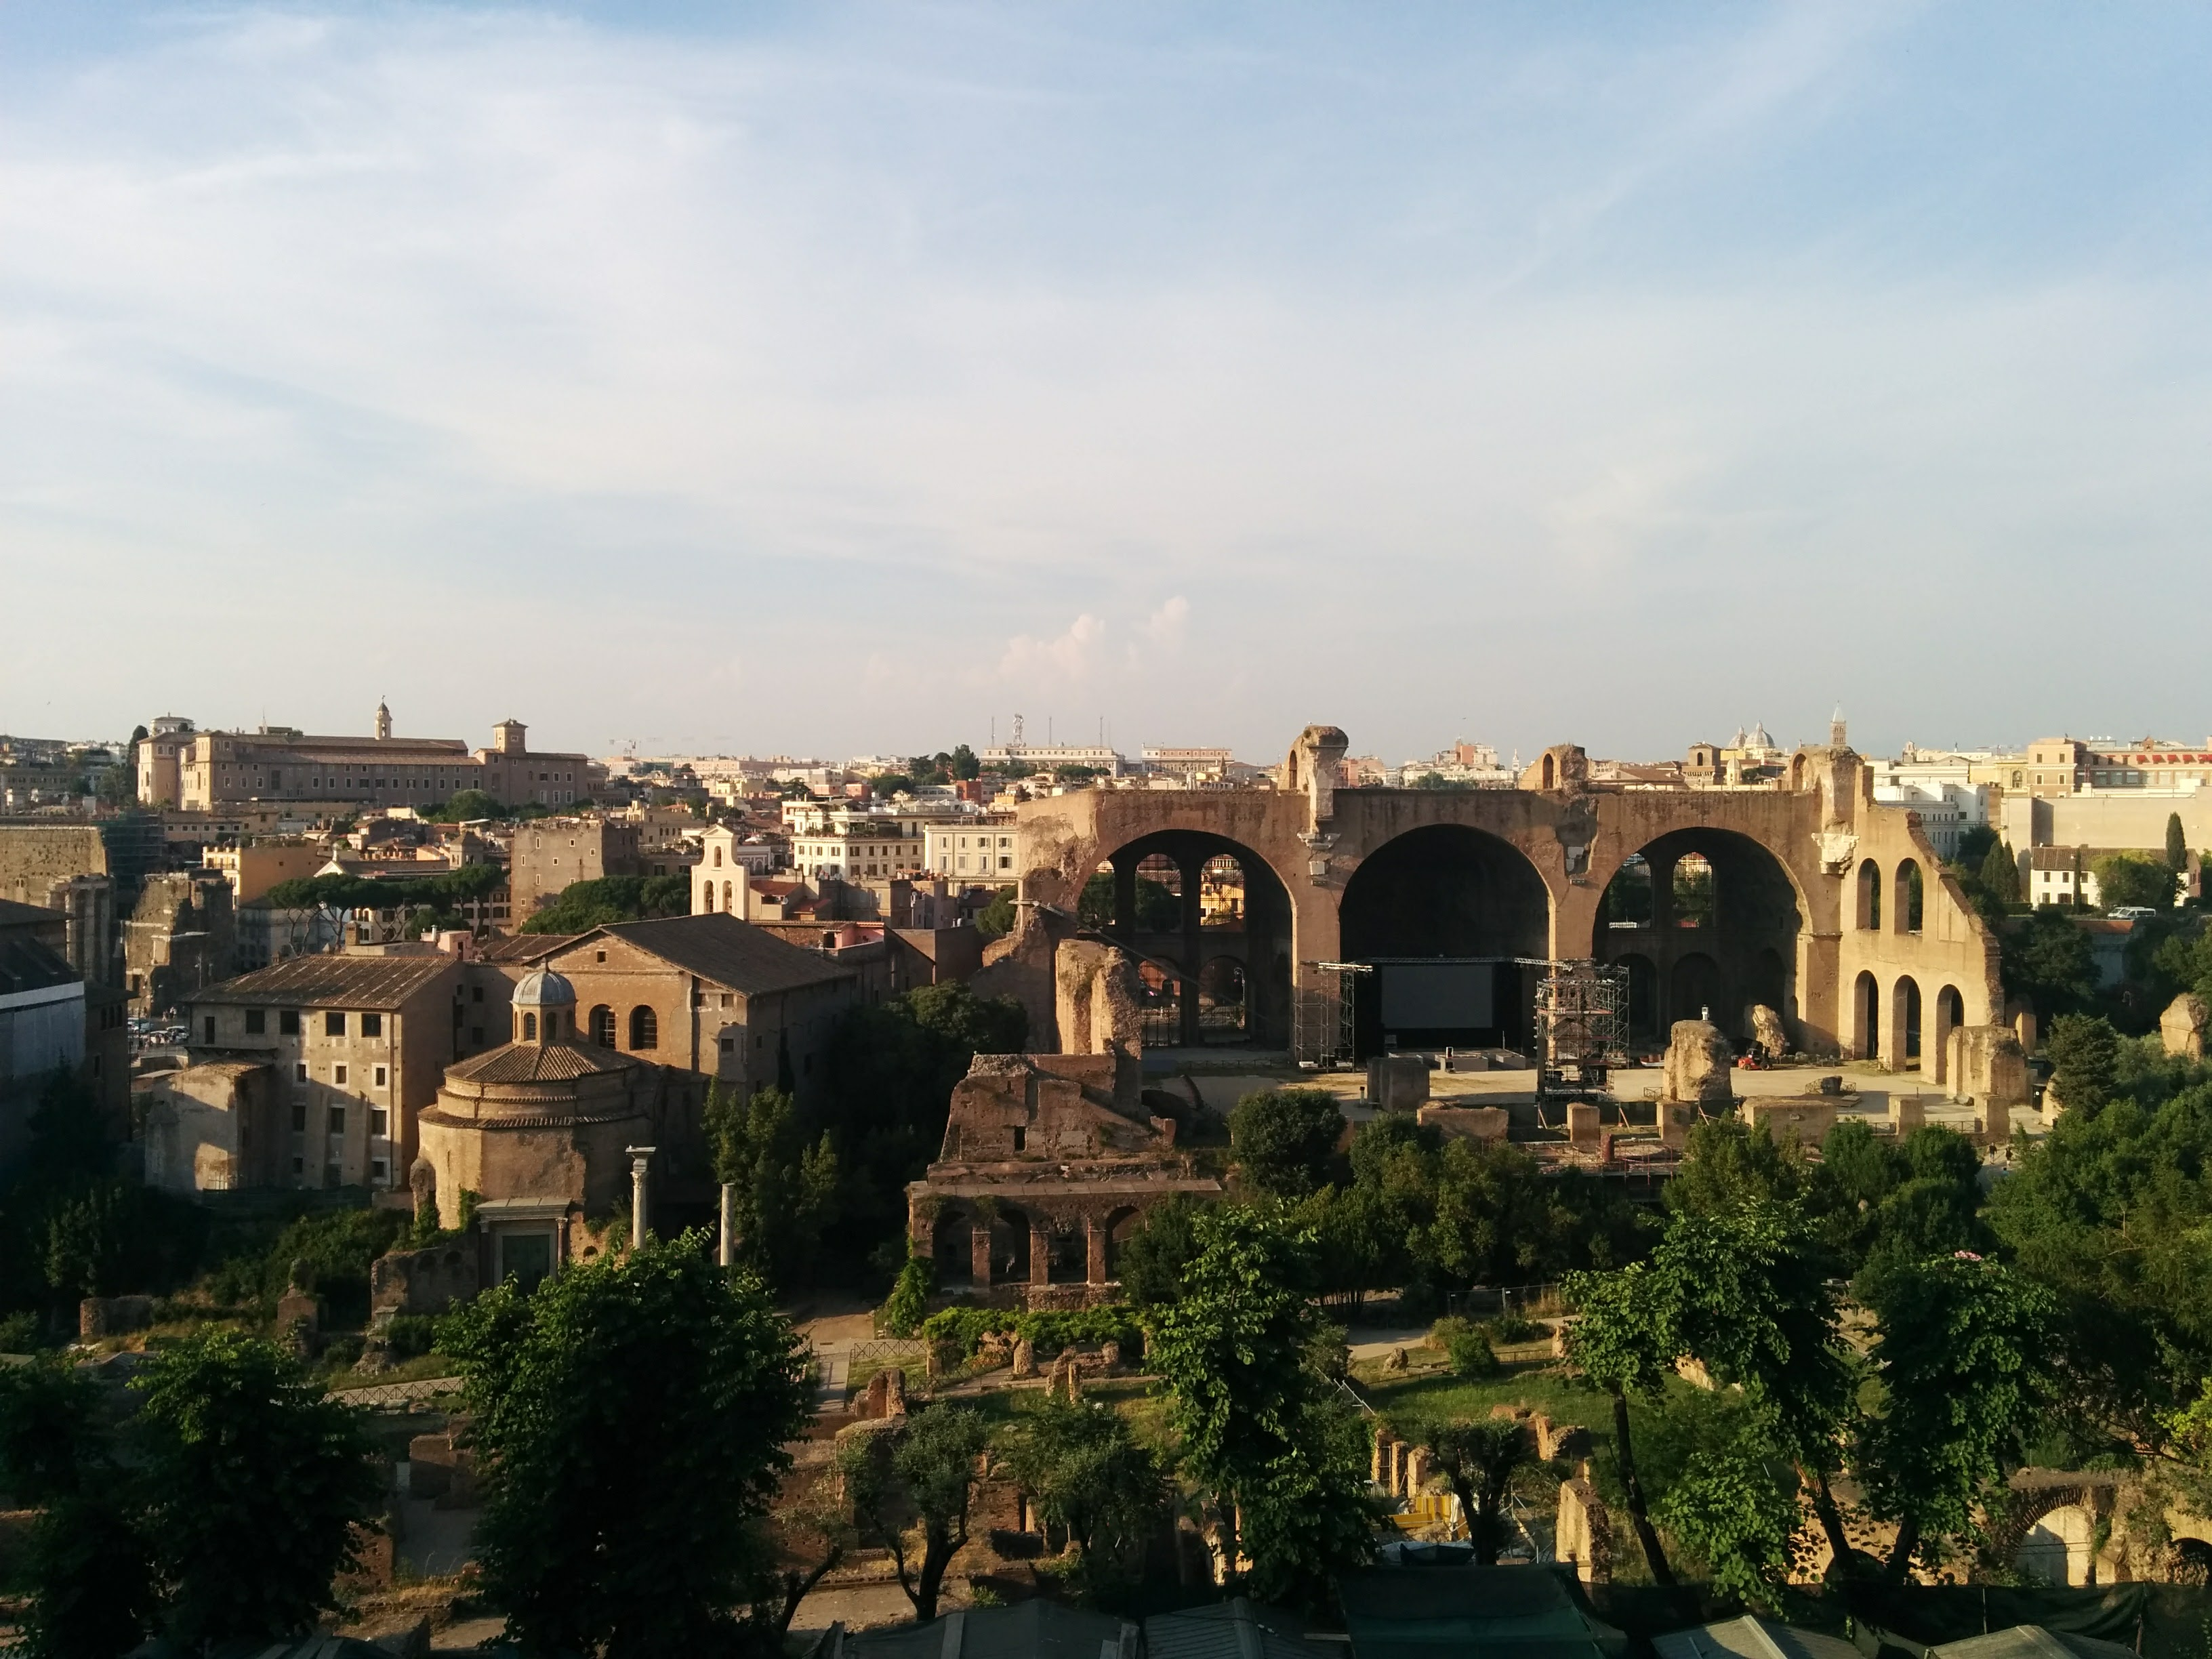 I would have liked more pictures in the Roman Forum - it was incredible. But we came pretty late, so we had to leave :/